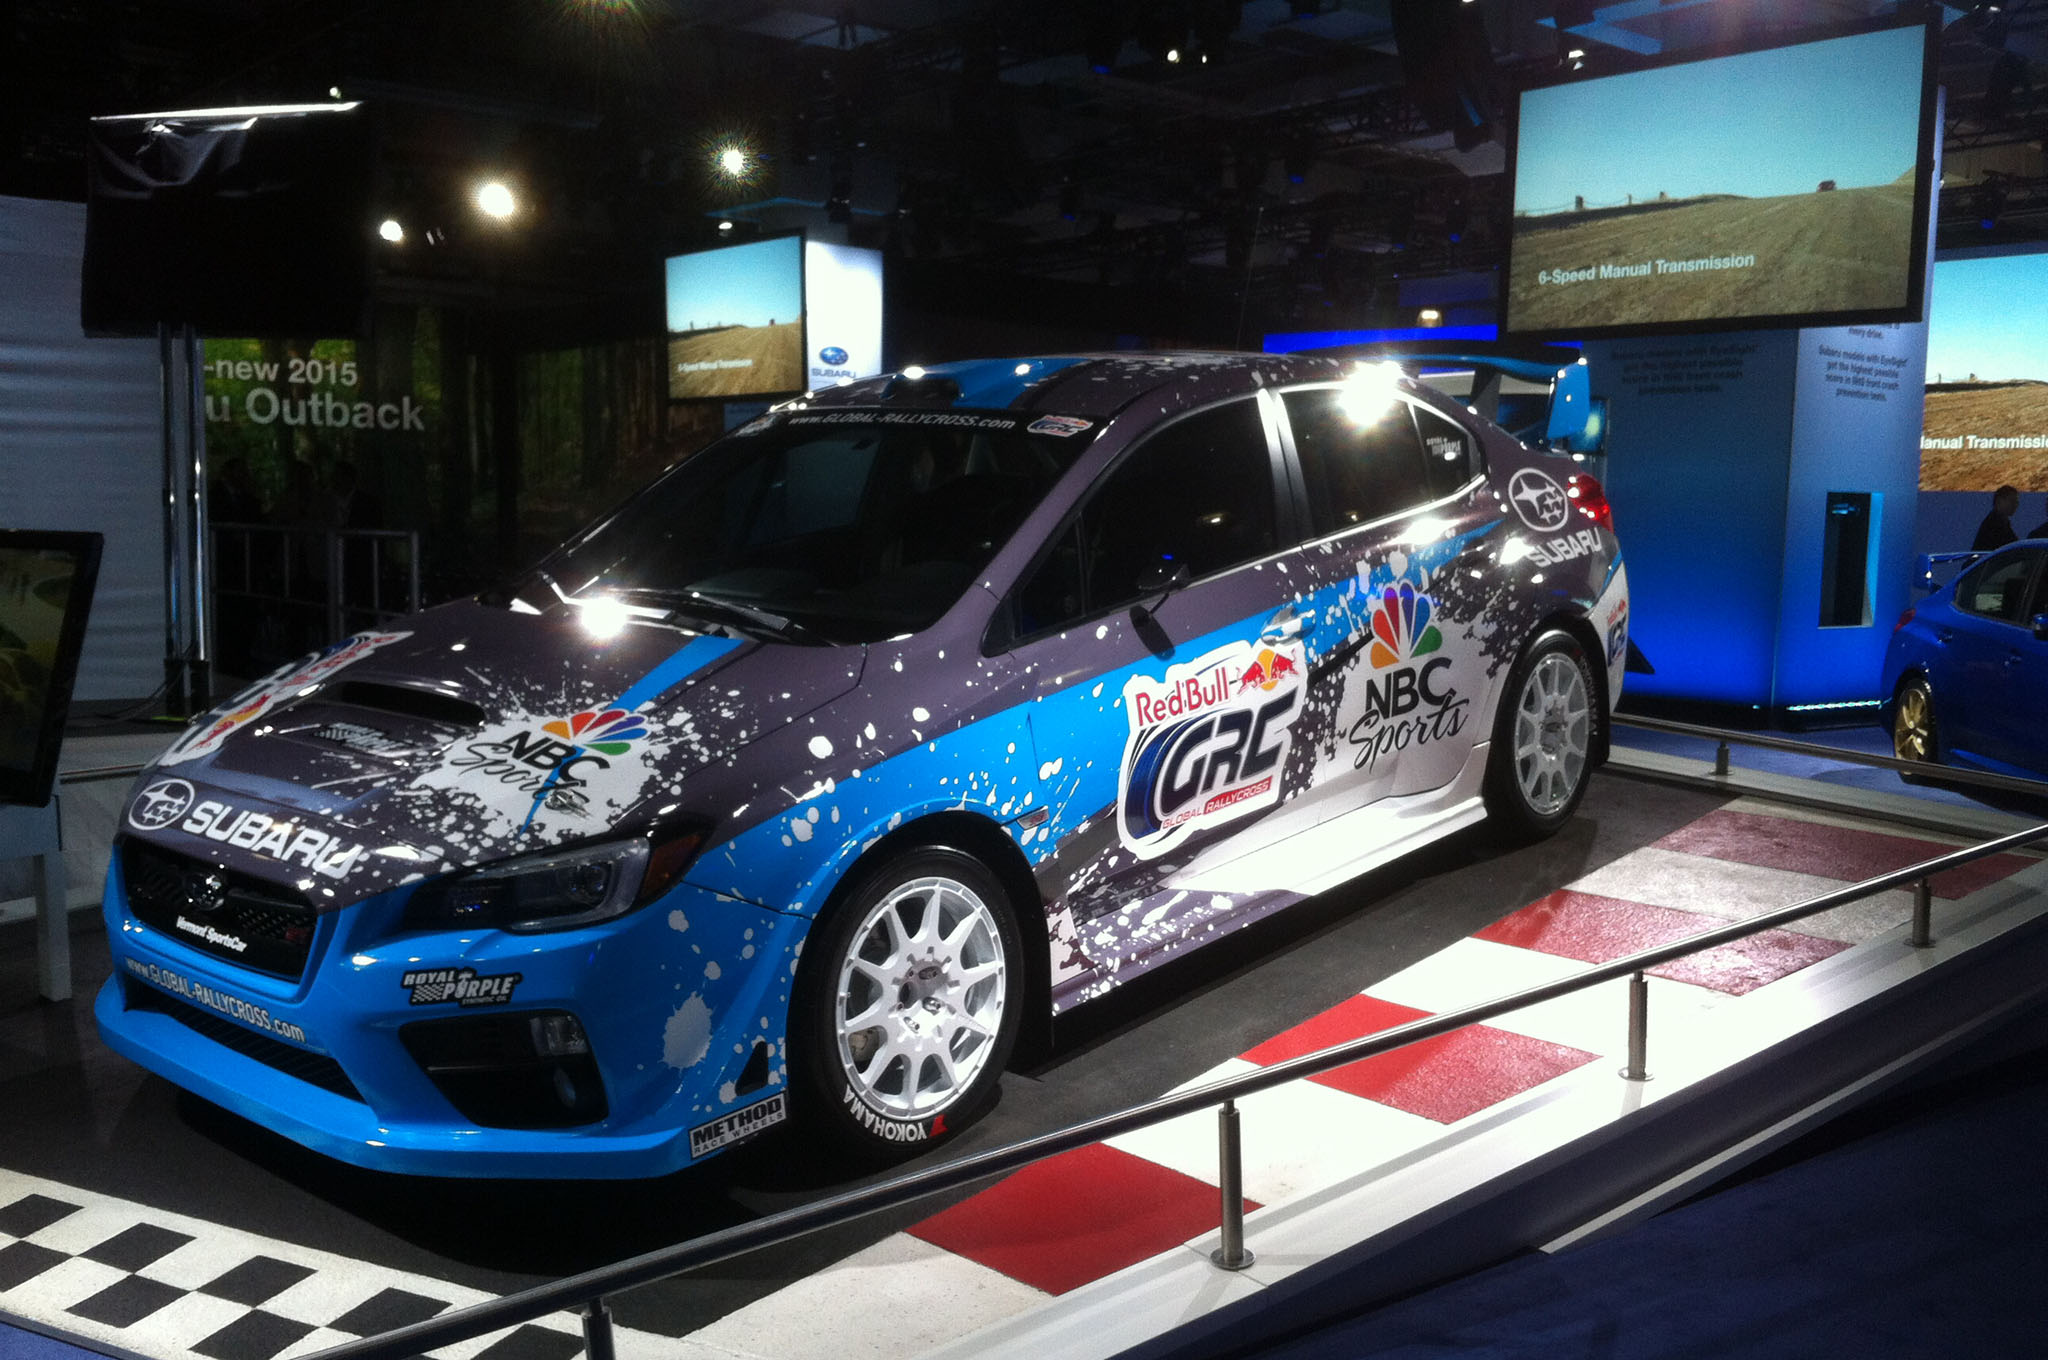 2015 Subaru Wrx Sti Rally Car Shown At New York Show